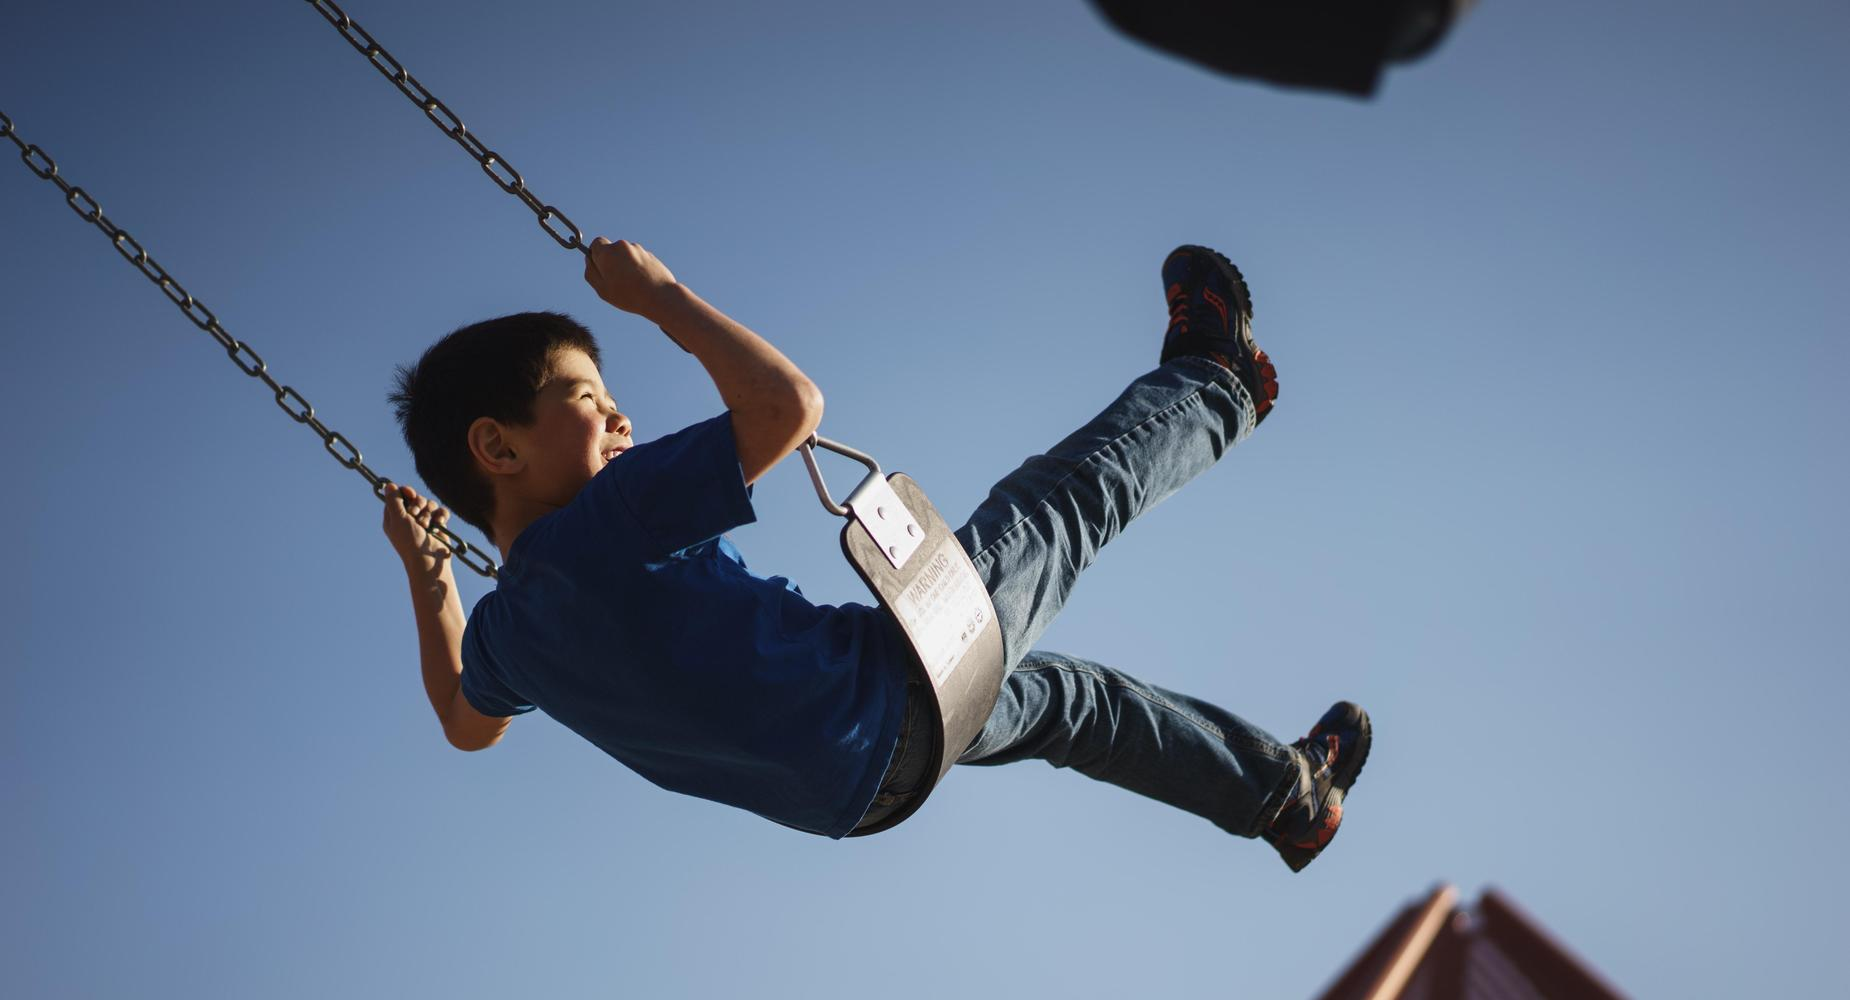 A smiling boy swings into the air, his feet kicking against a blue sky